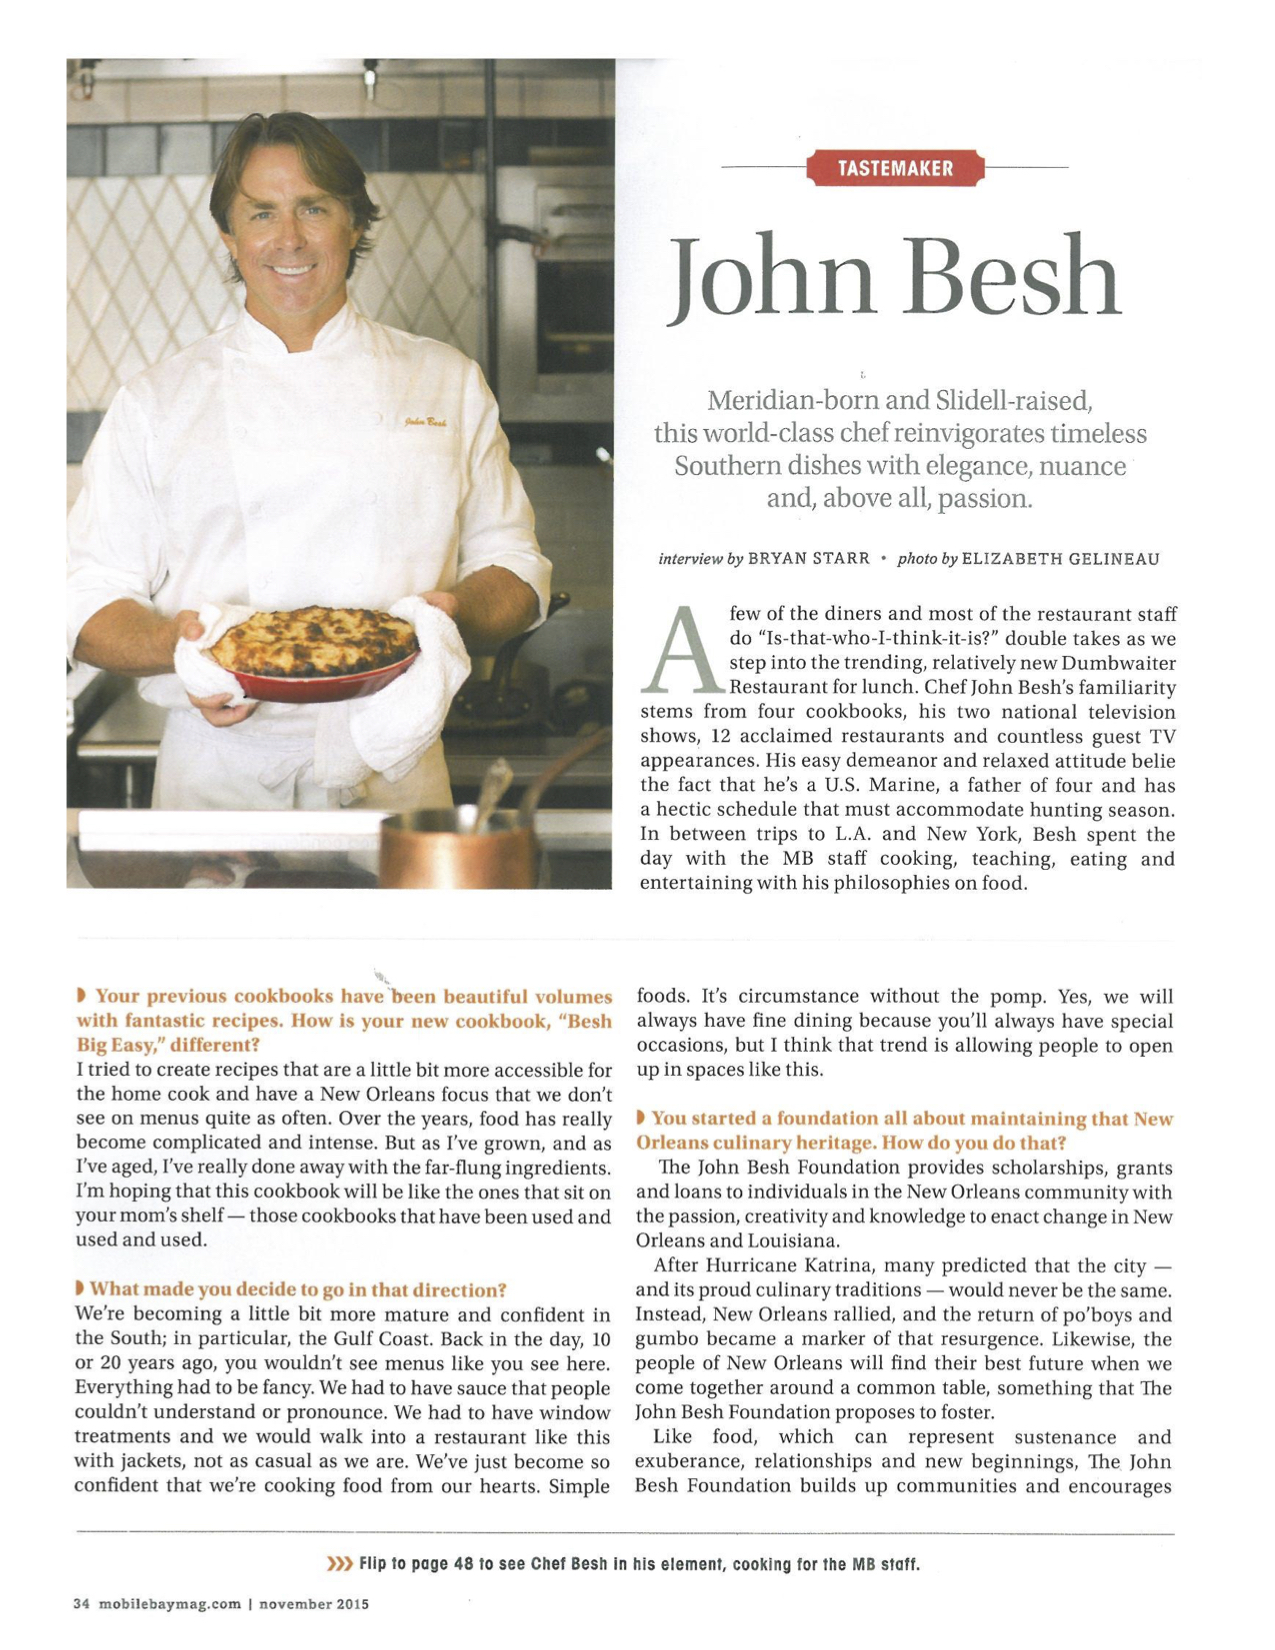 4 Mobile Bay Magazine_John Besh_Nov 2015(2).jpg